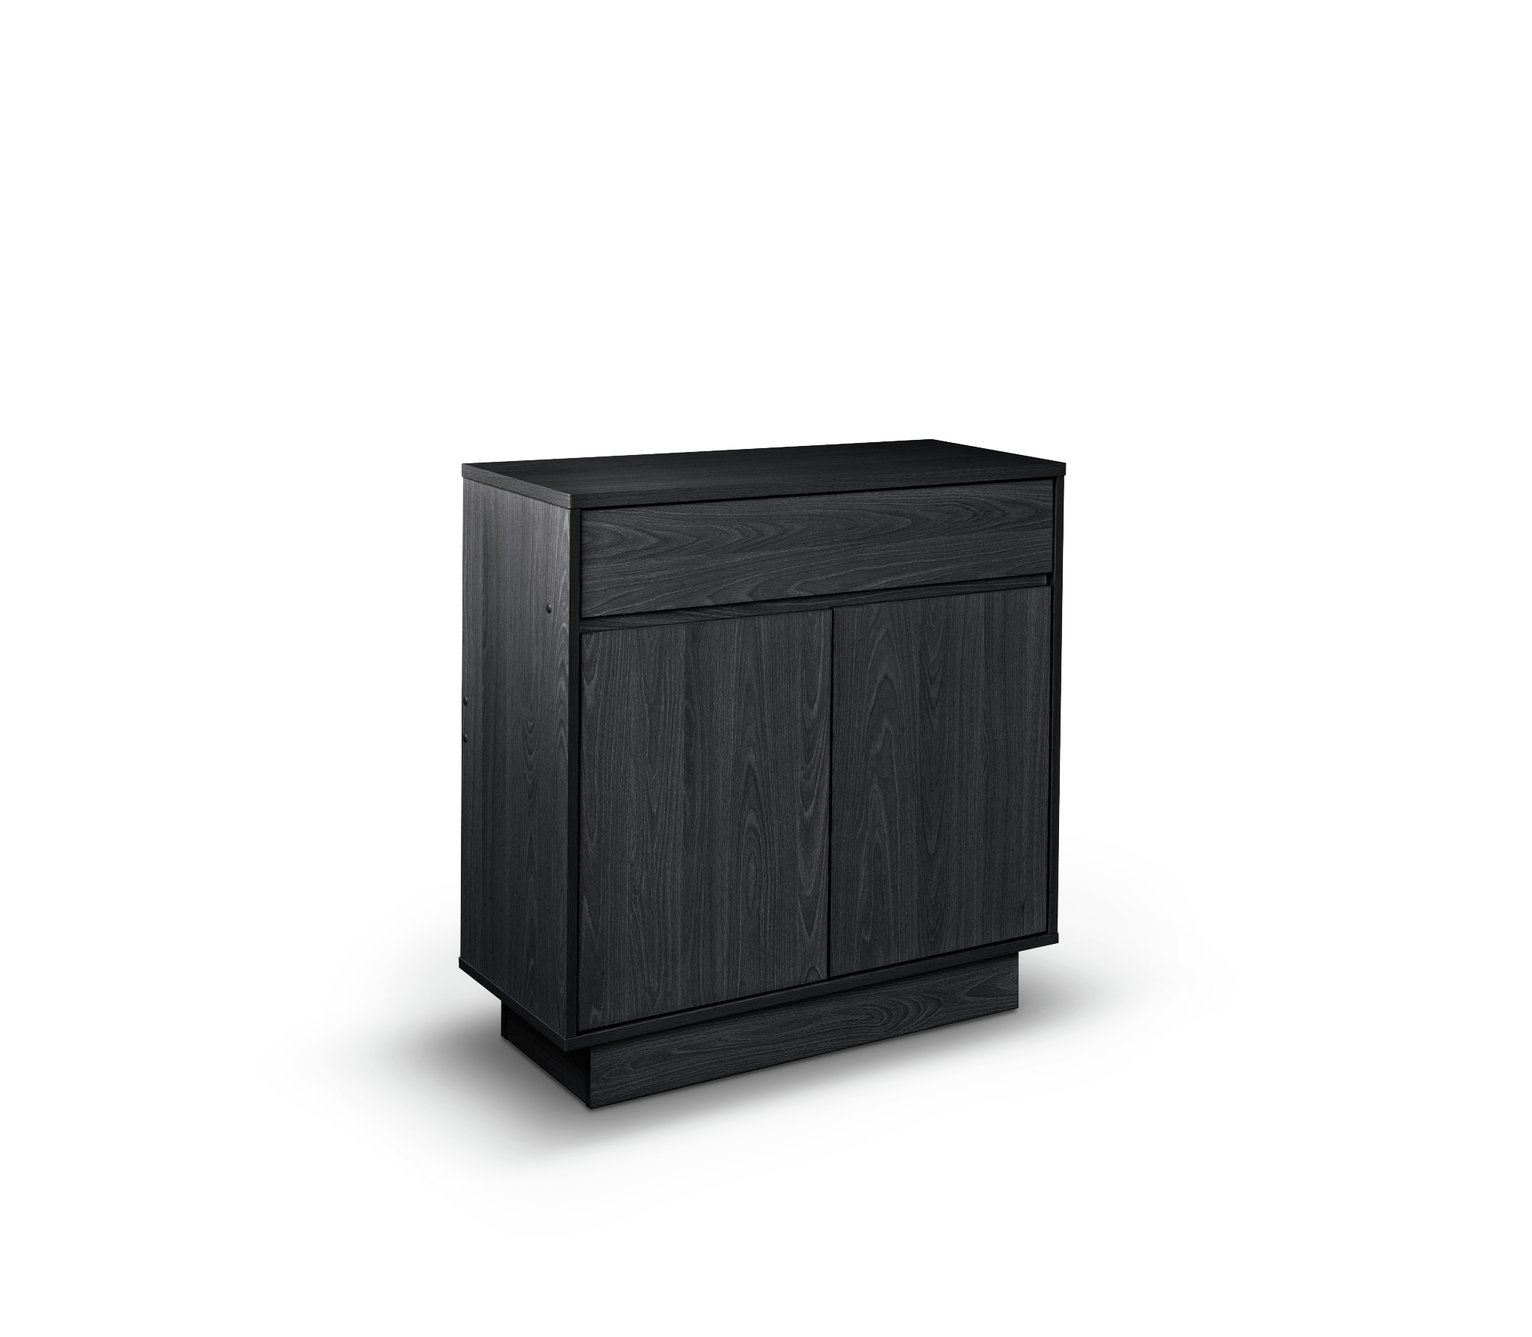 Argos Home Cubes 2 Door 1 Drawer Sideboard -Black Ash Effect